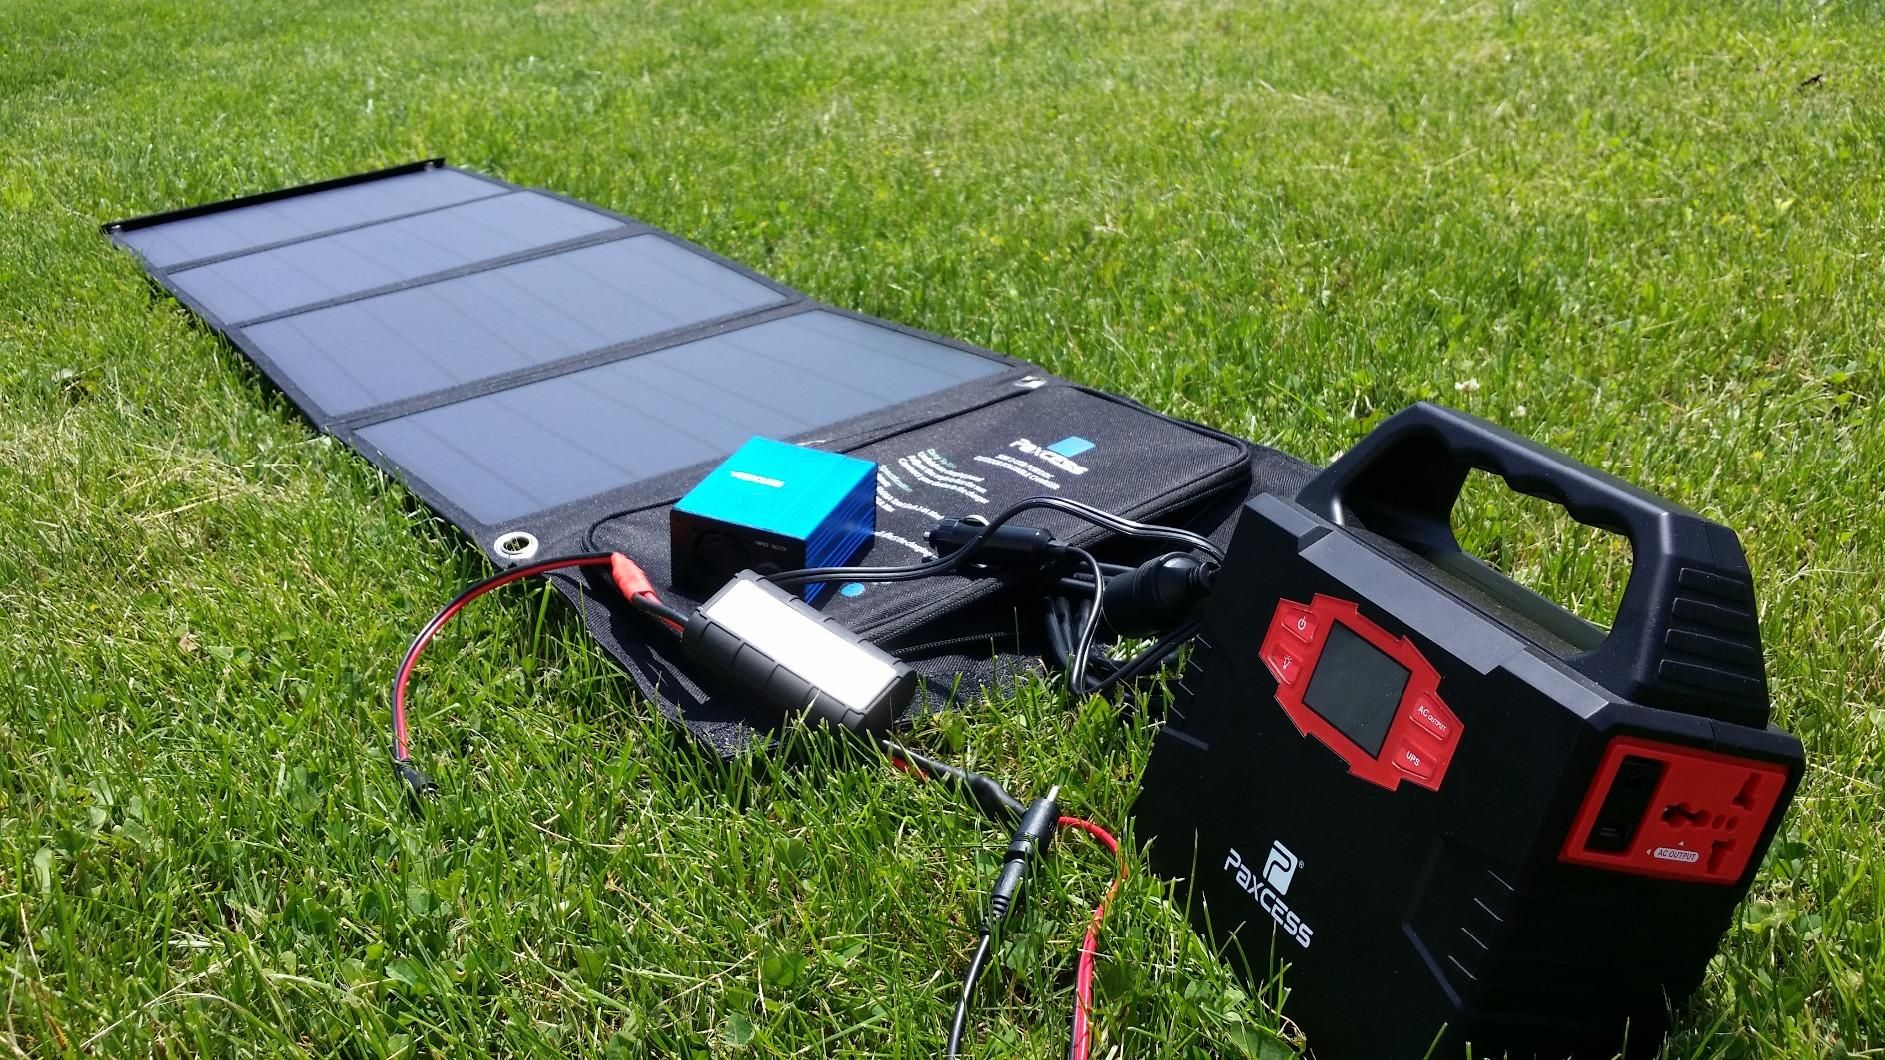 The Best Solar Panels For Camping Reviews Best Solar Panels Portable Solar Generator Solar